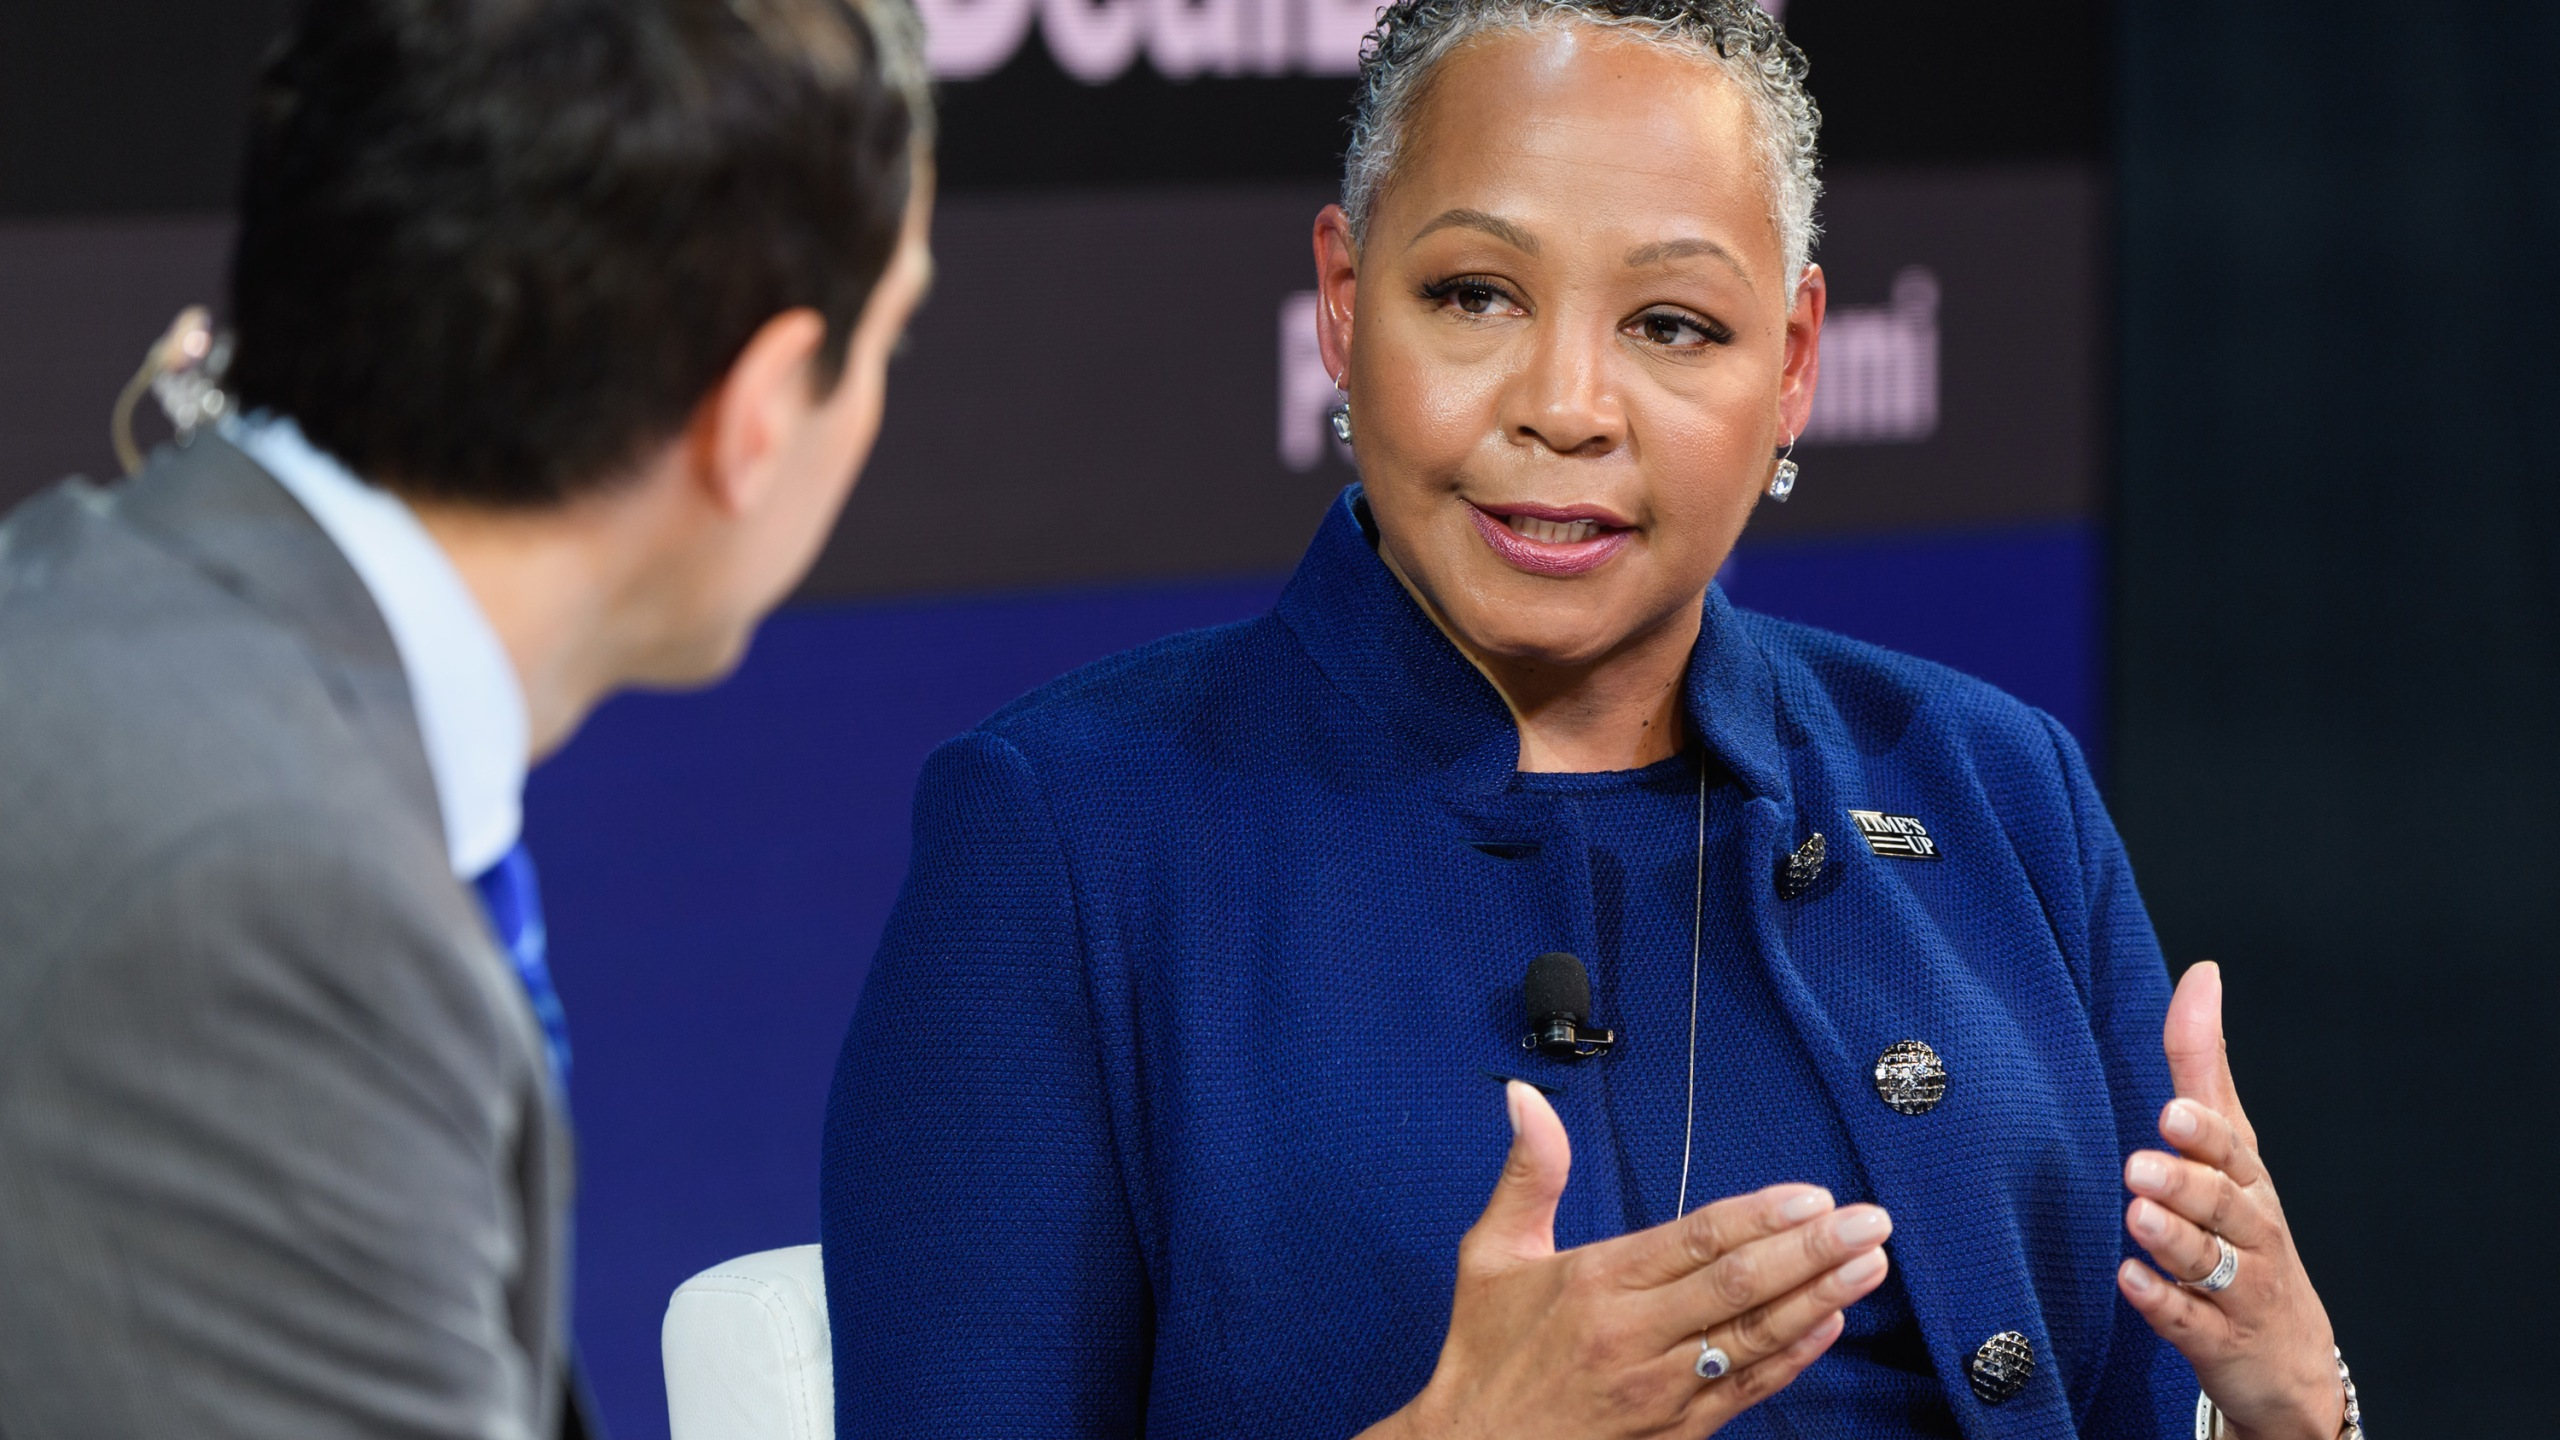 Lisa Borders, president and CEO of Time's Up speaks onstage during the 2018 New York Times Dealbook on Nov. 1, 2018, in New York City. (Credit: Michael Cohen/Getty Images for The New York Times)